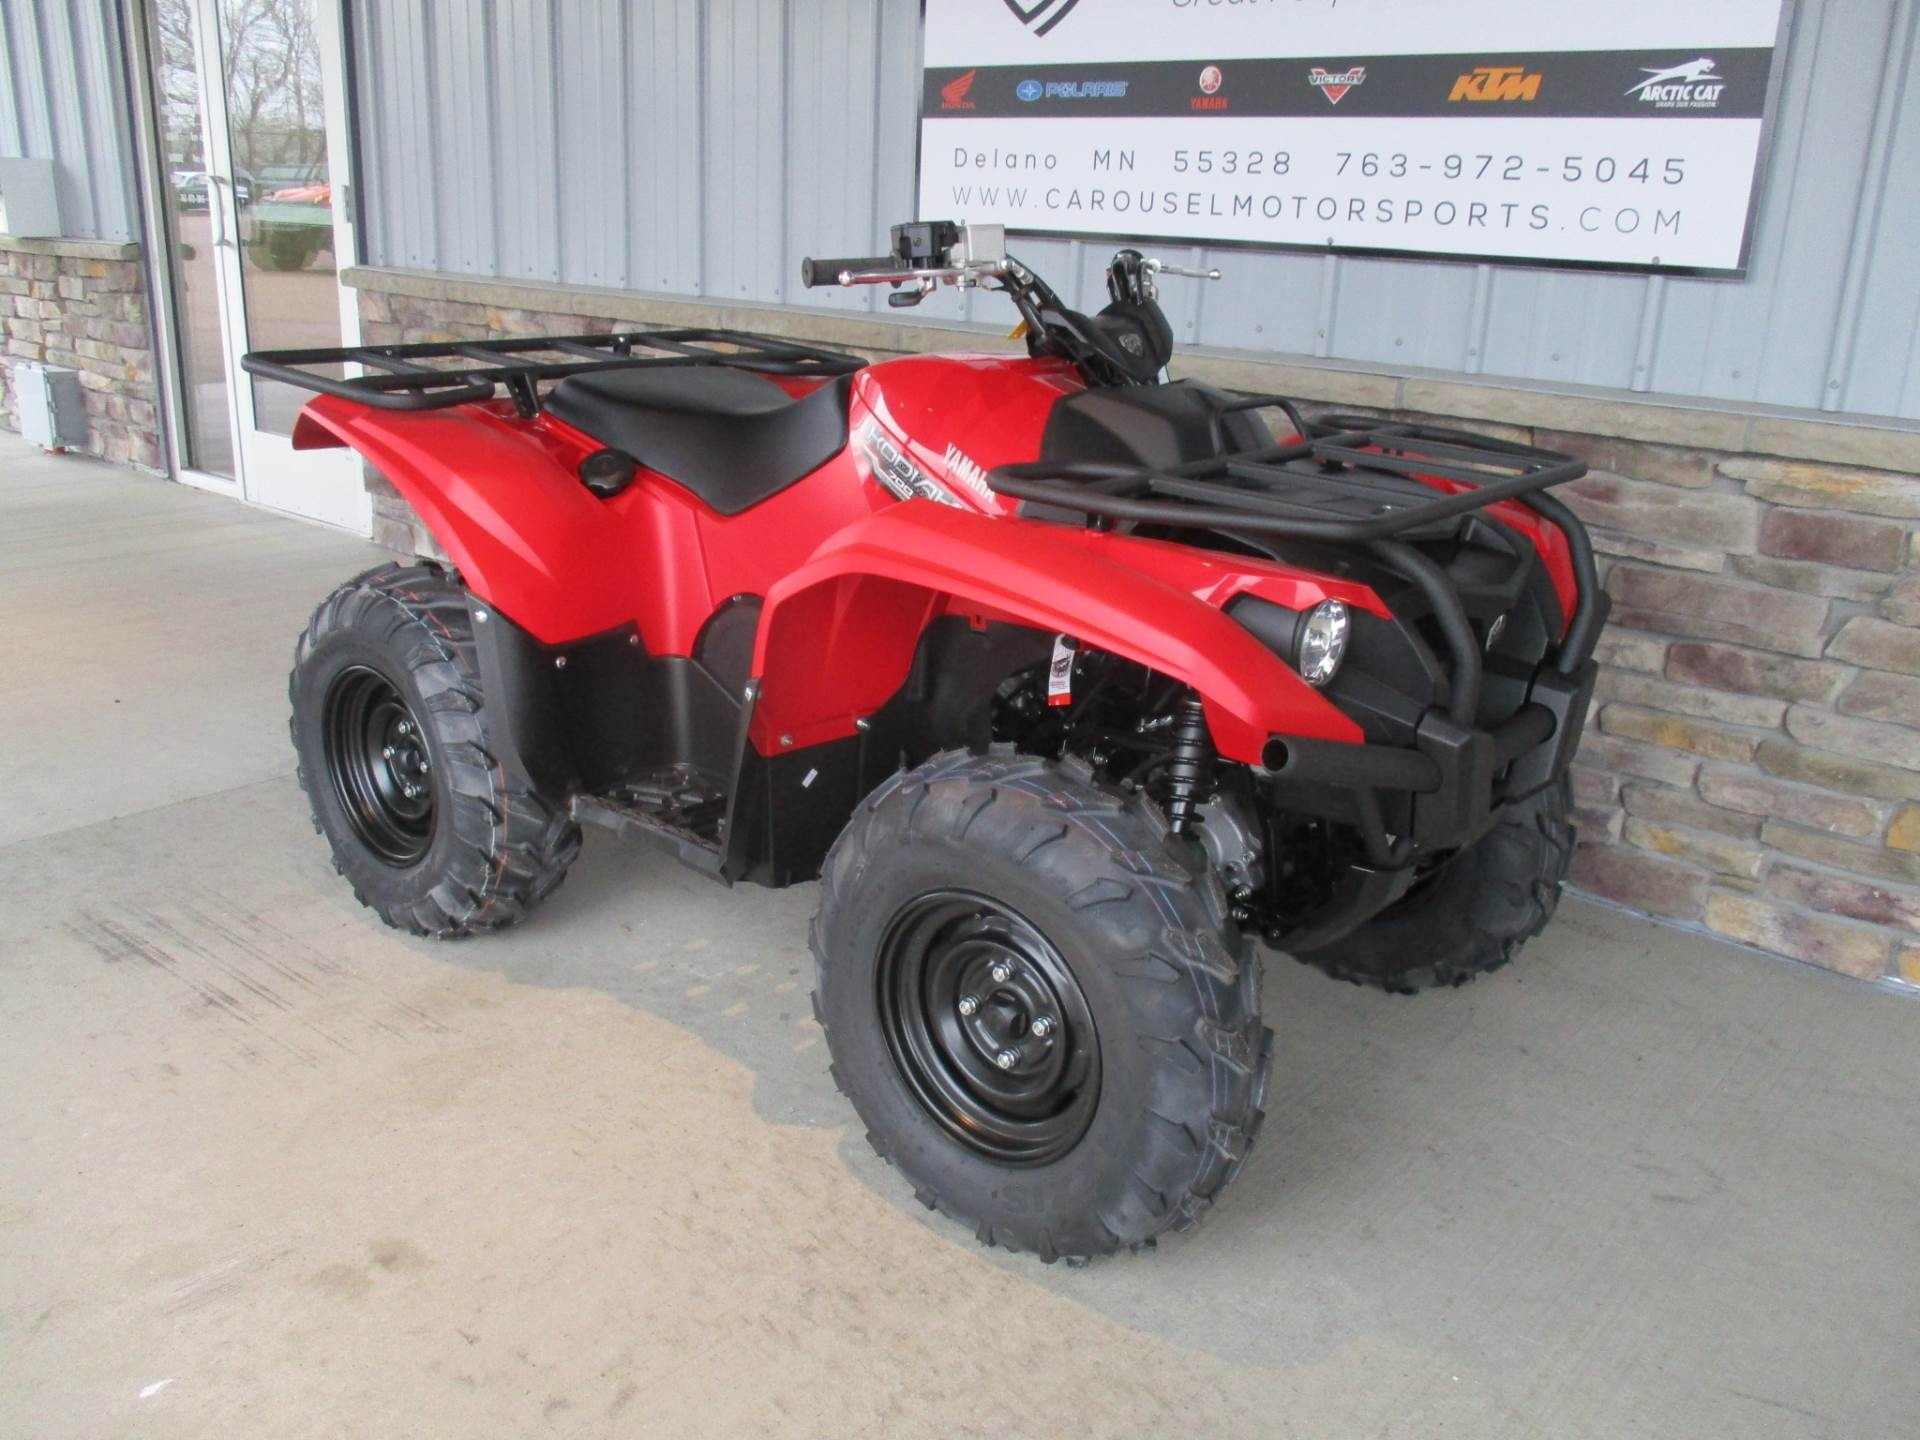 2017 Yamaha Kodiak 700 in Delano, Minnesota